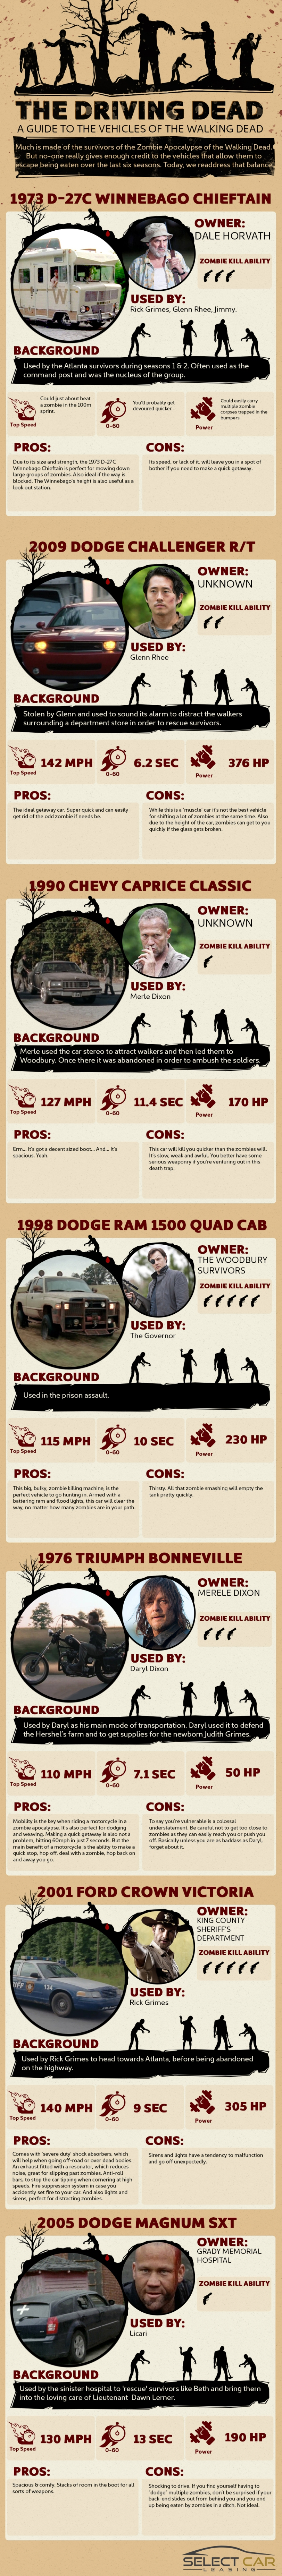 The Driving Dead: A Guide to the Vehicles of the Walking Dead